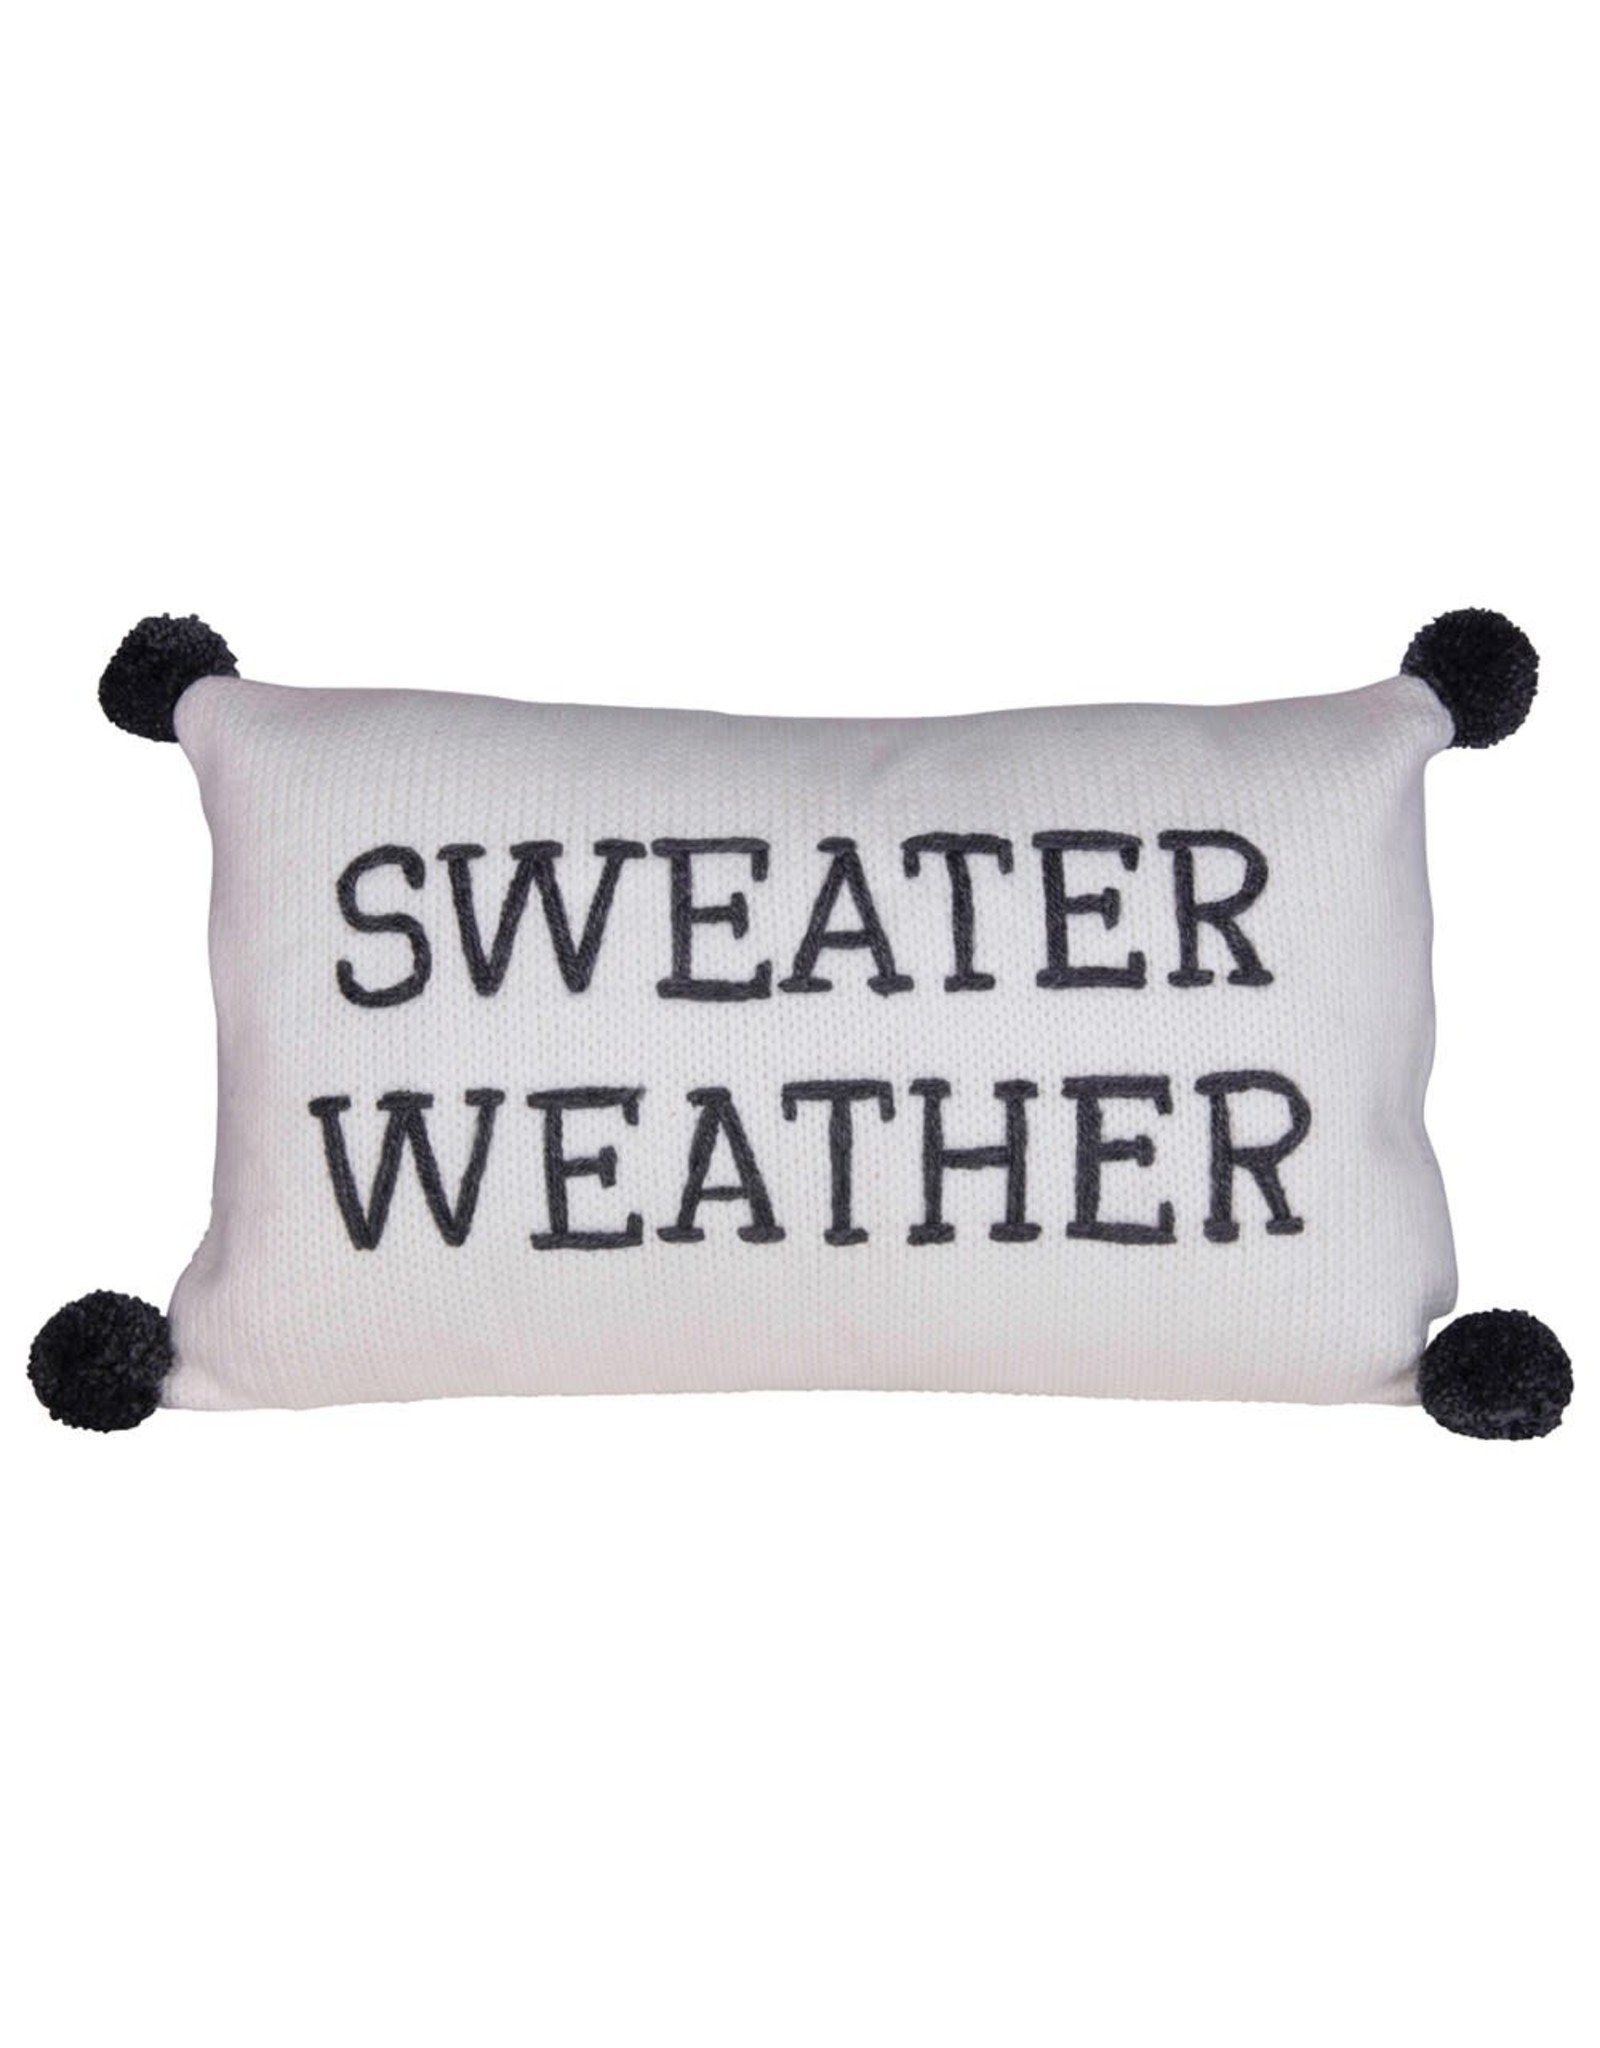 The Florist & The Merchant Sweater Weather Knit Pillow